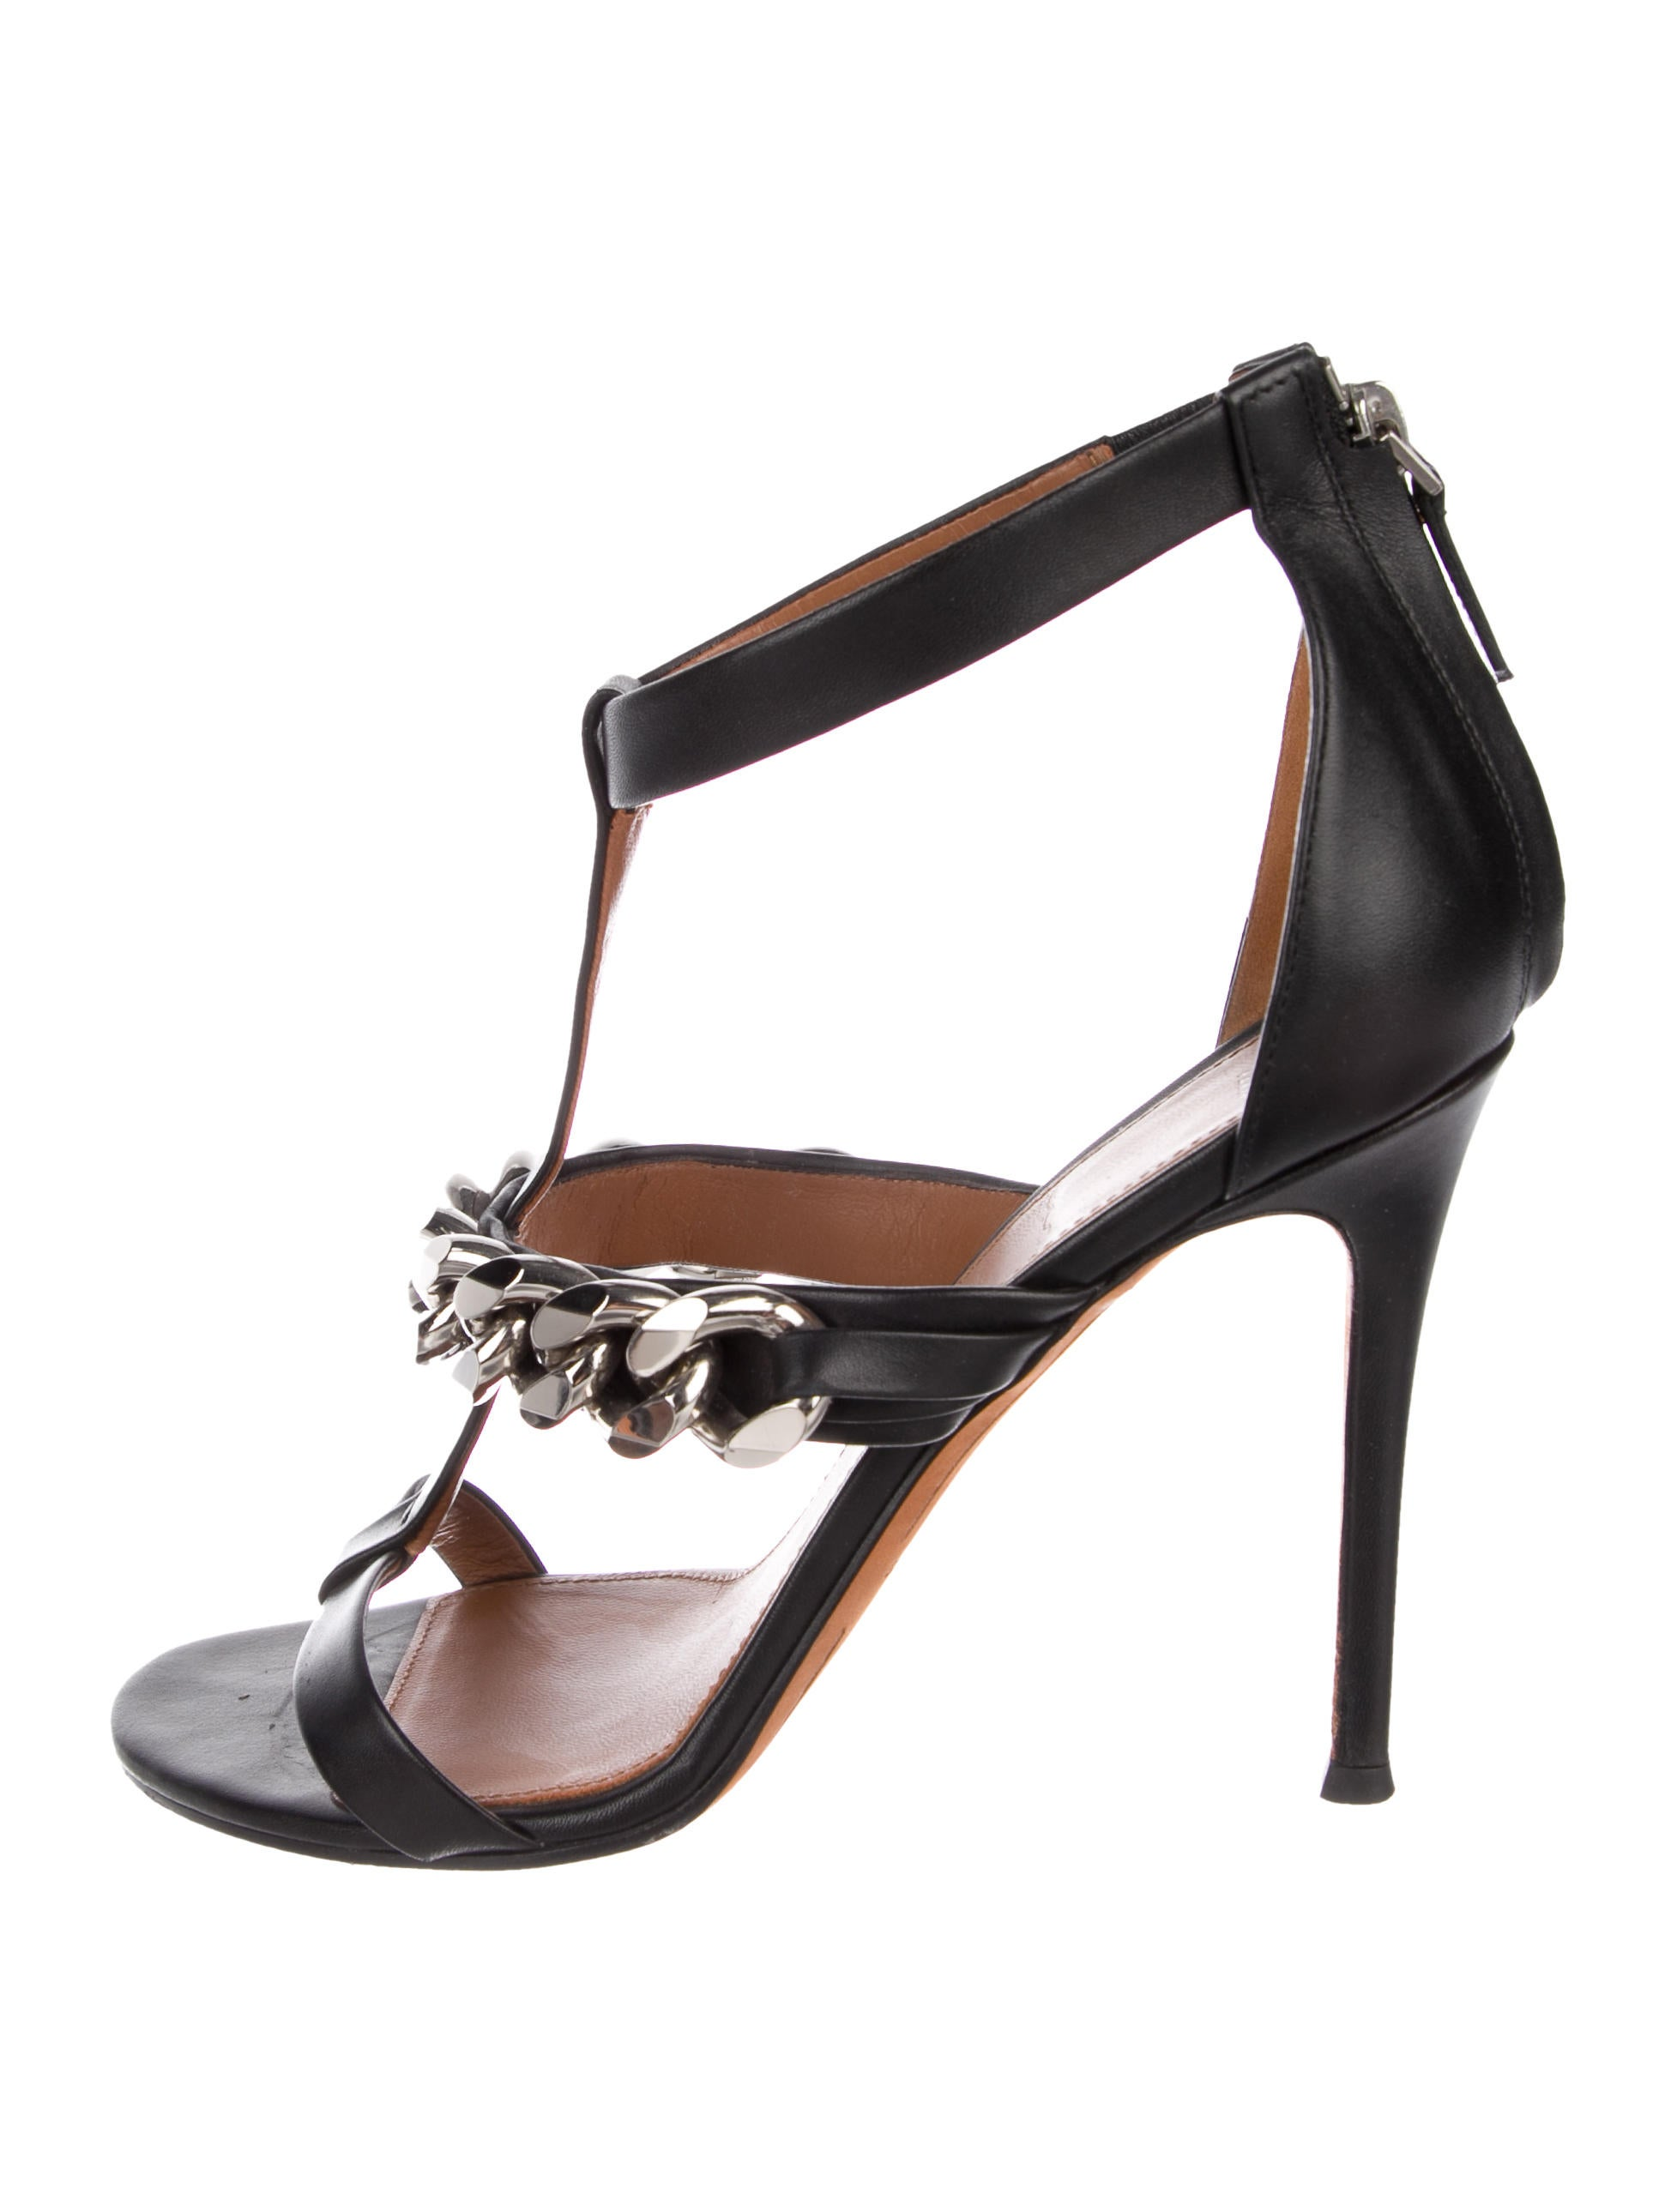 7aafd1e74472 Givenchy Leather Chain-Link Sandals - Shoes - GIV57967